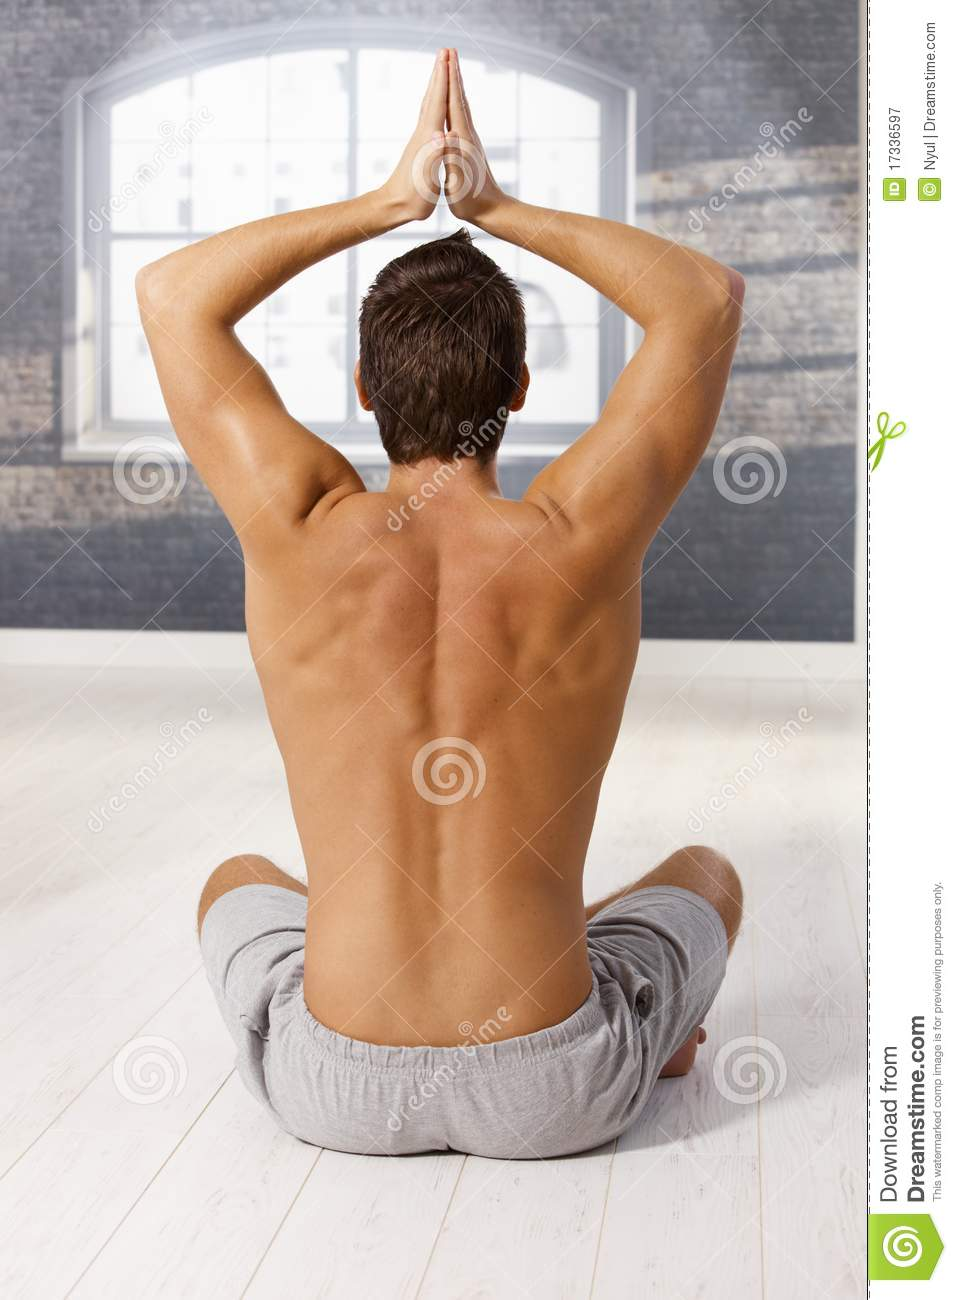 Muscular young man in yoga exercise